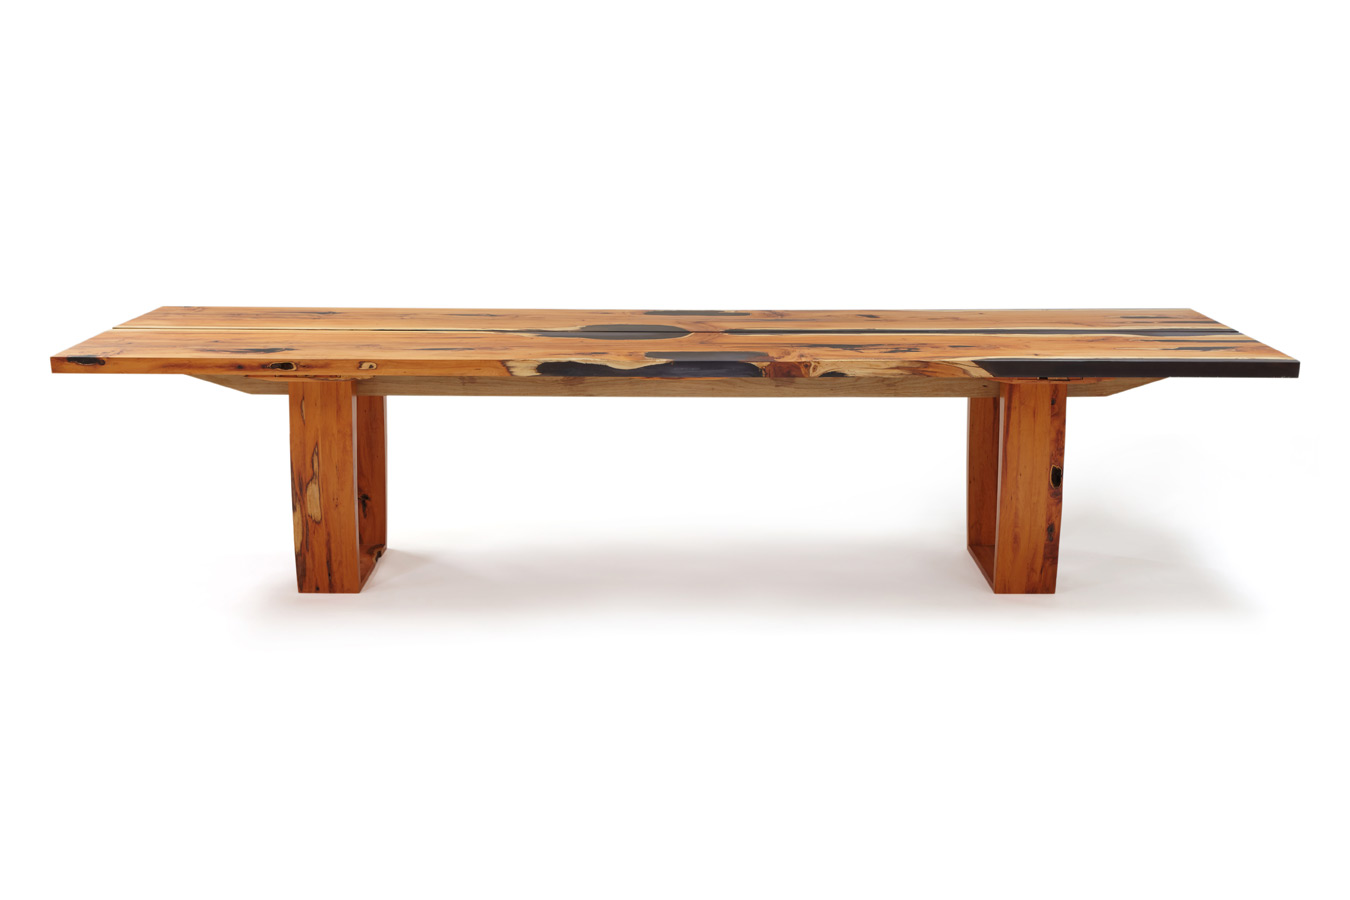 21_Yew-and-resin-dining-conference-table_4.jpg